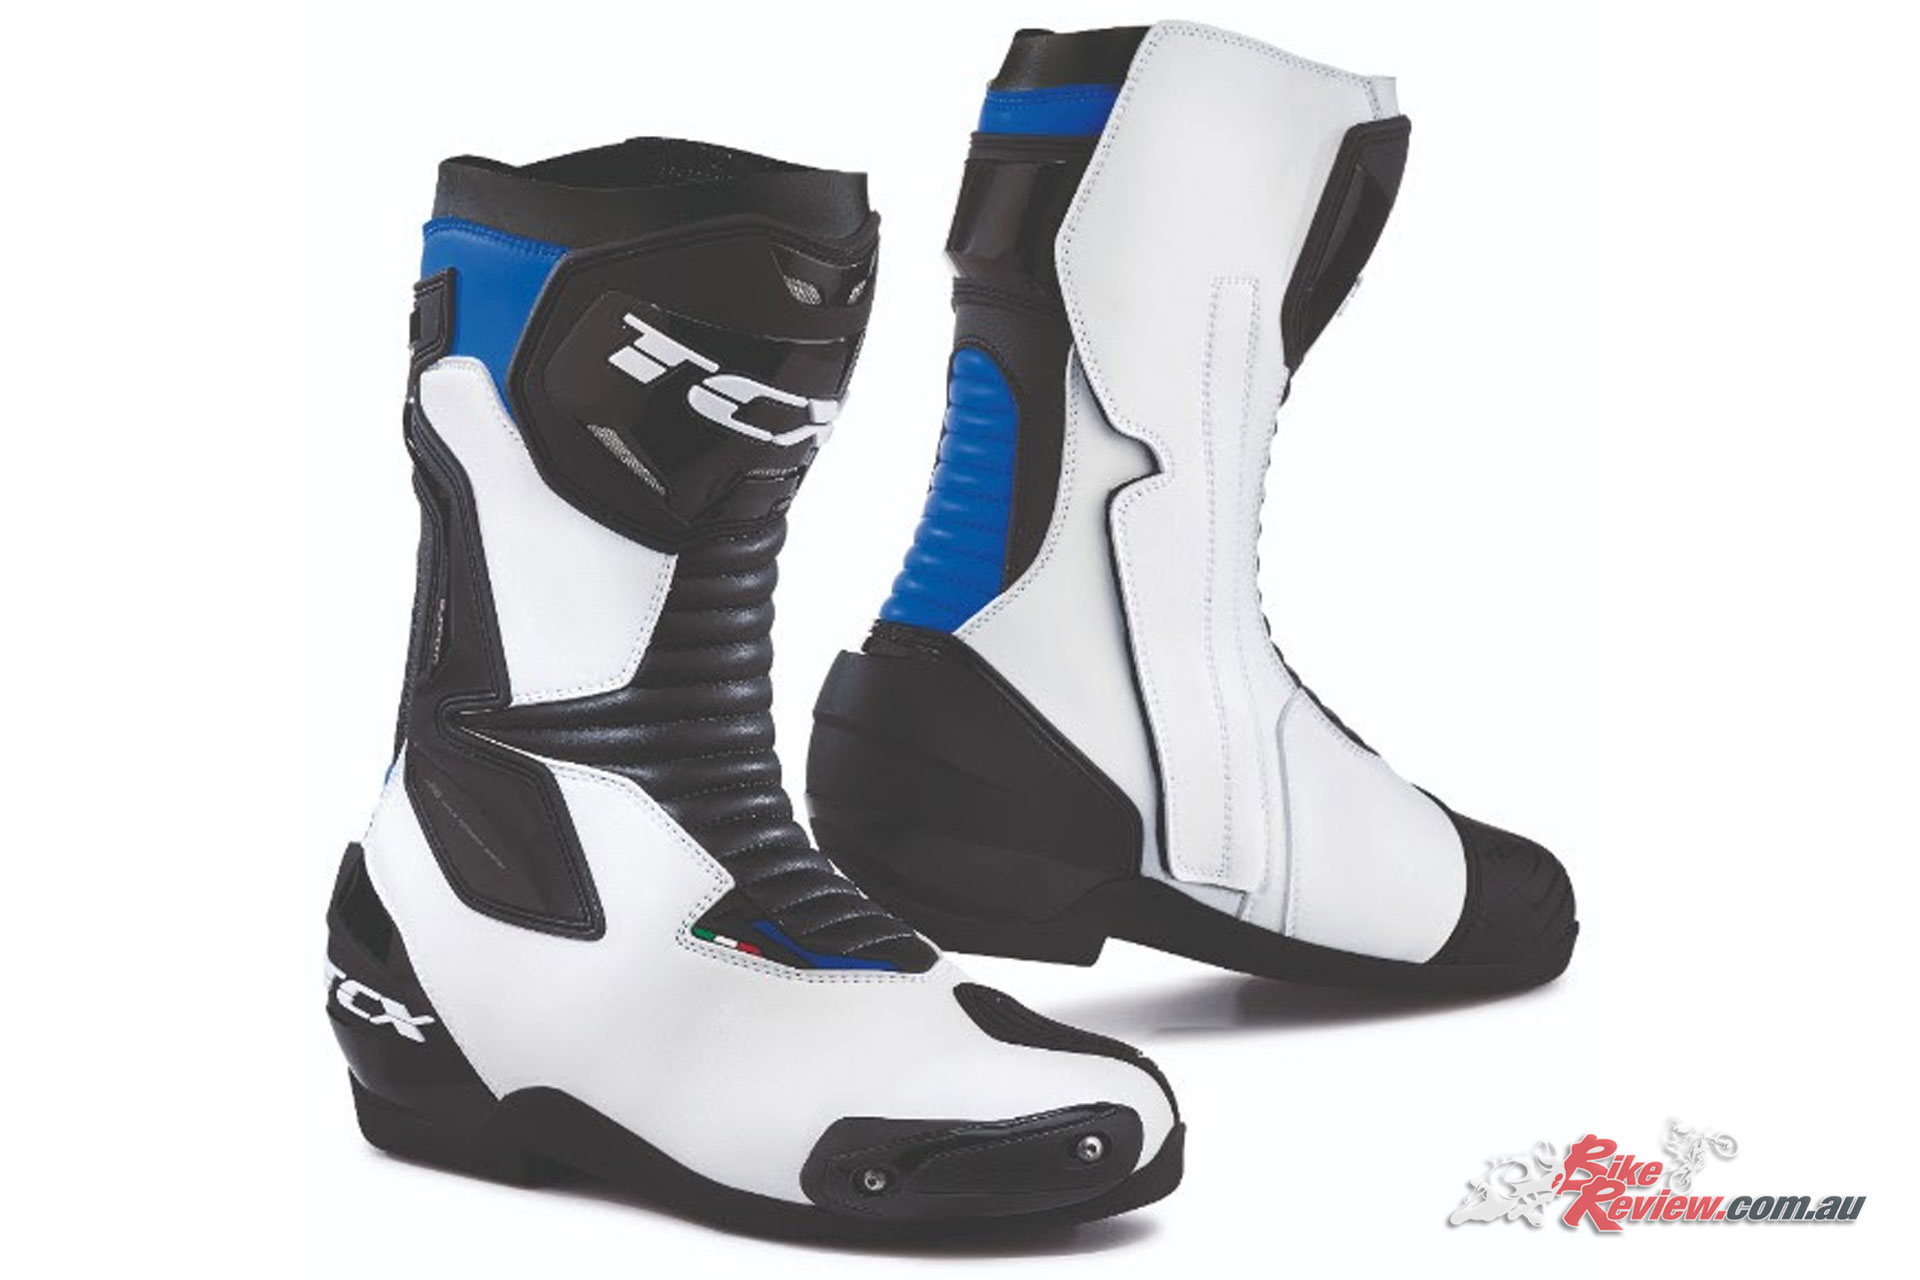 TCX boots from the SP-Master range